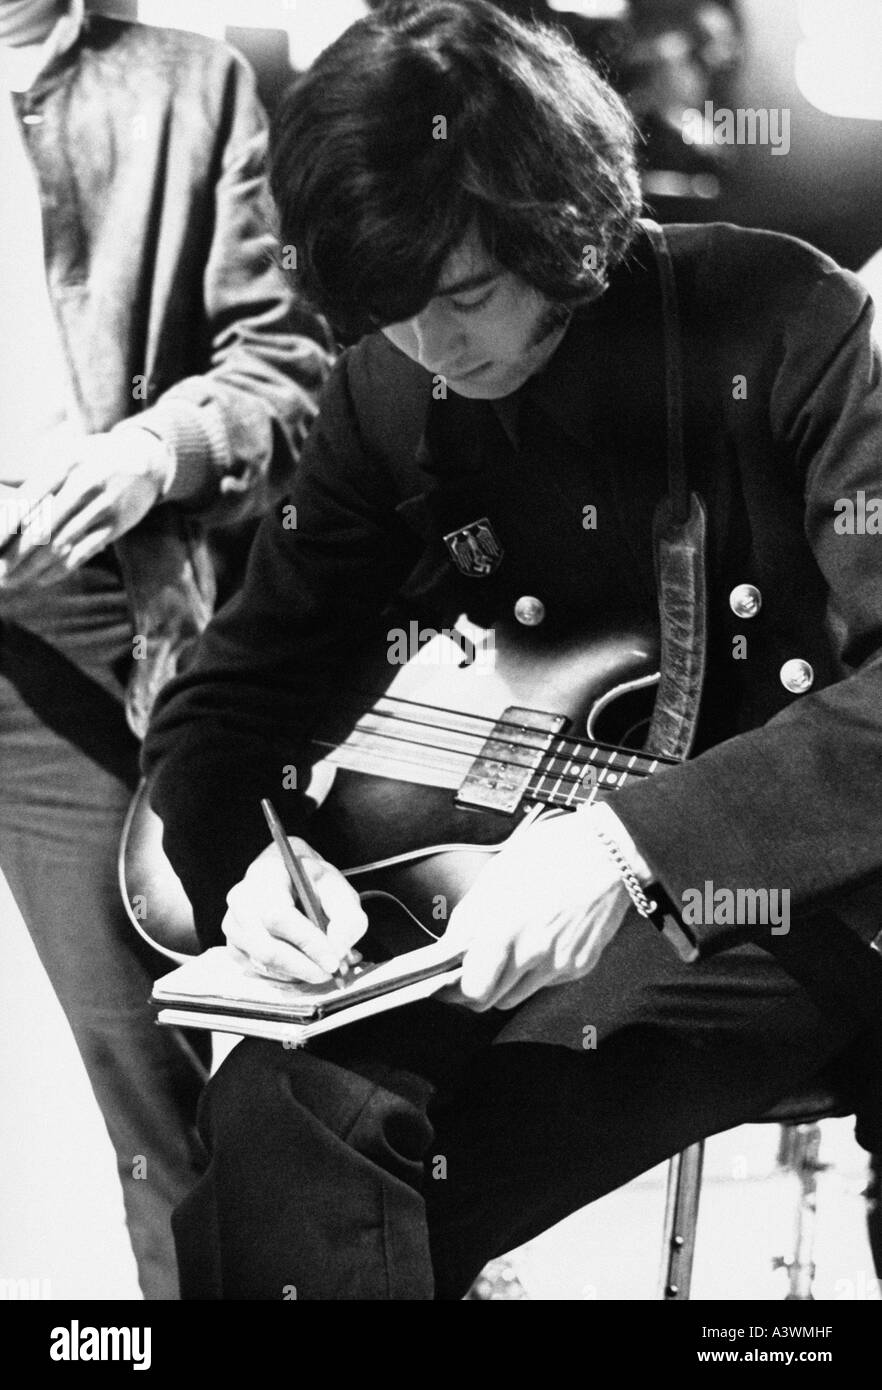 how to get jimmy page autograph